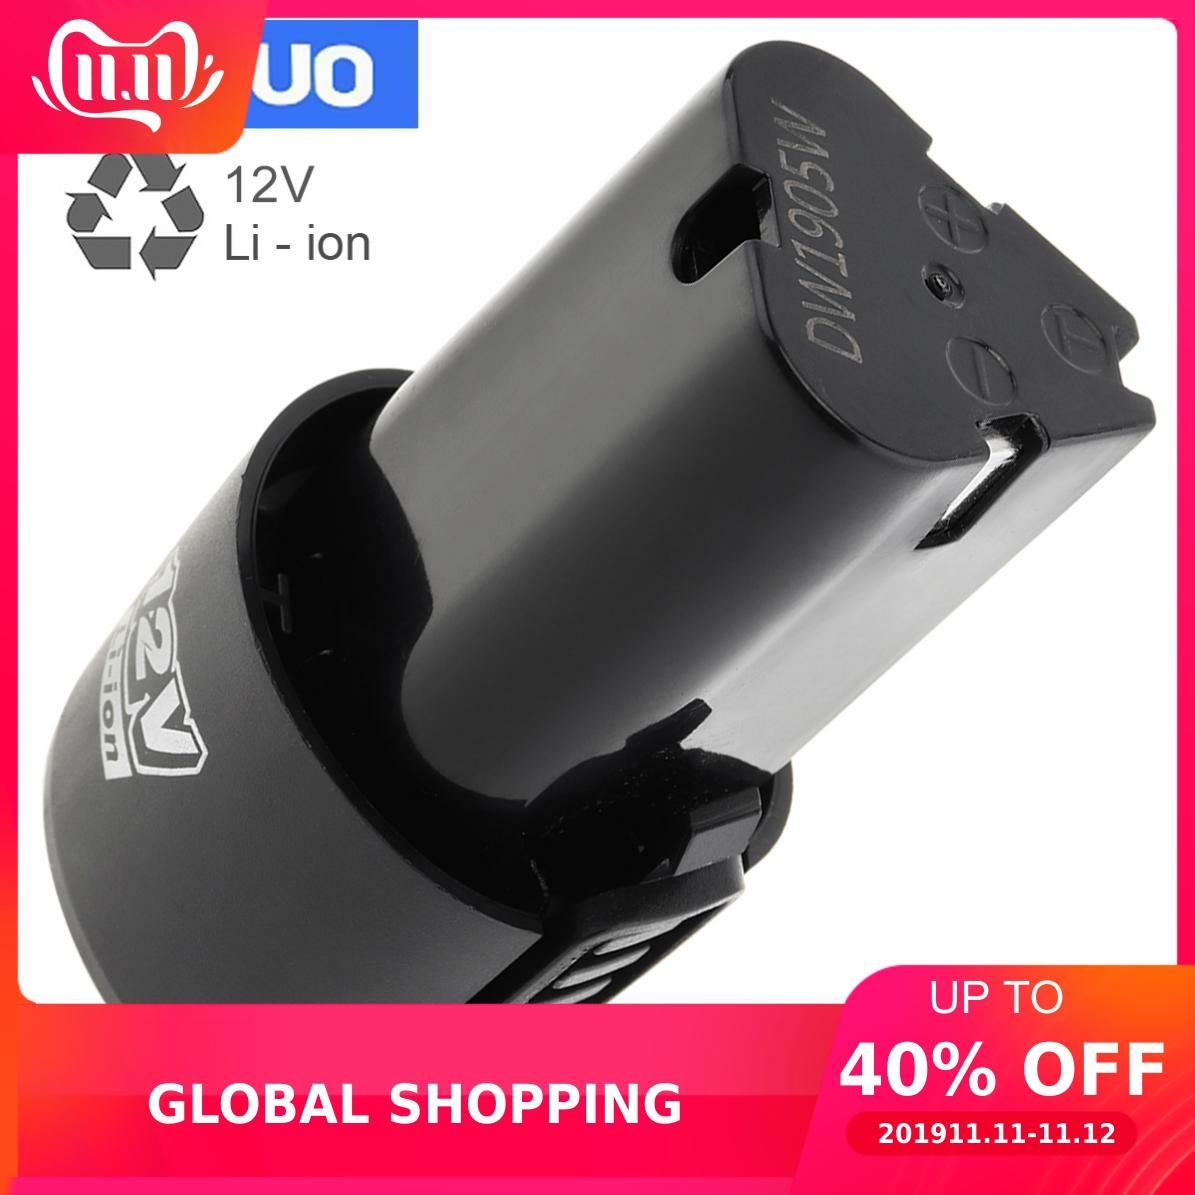 Universal 12V 3 X 1500mAh Capacity Li-ion Battery Disconnect Button For Electric Drill / Pistol Drill / Electric Screwdriver